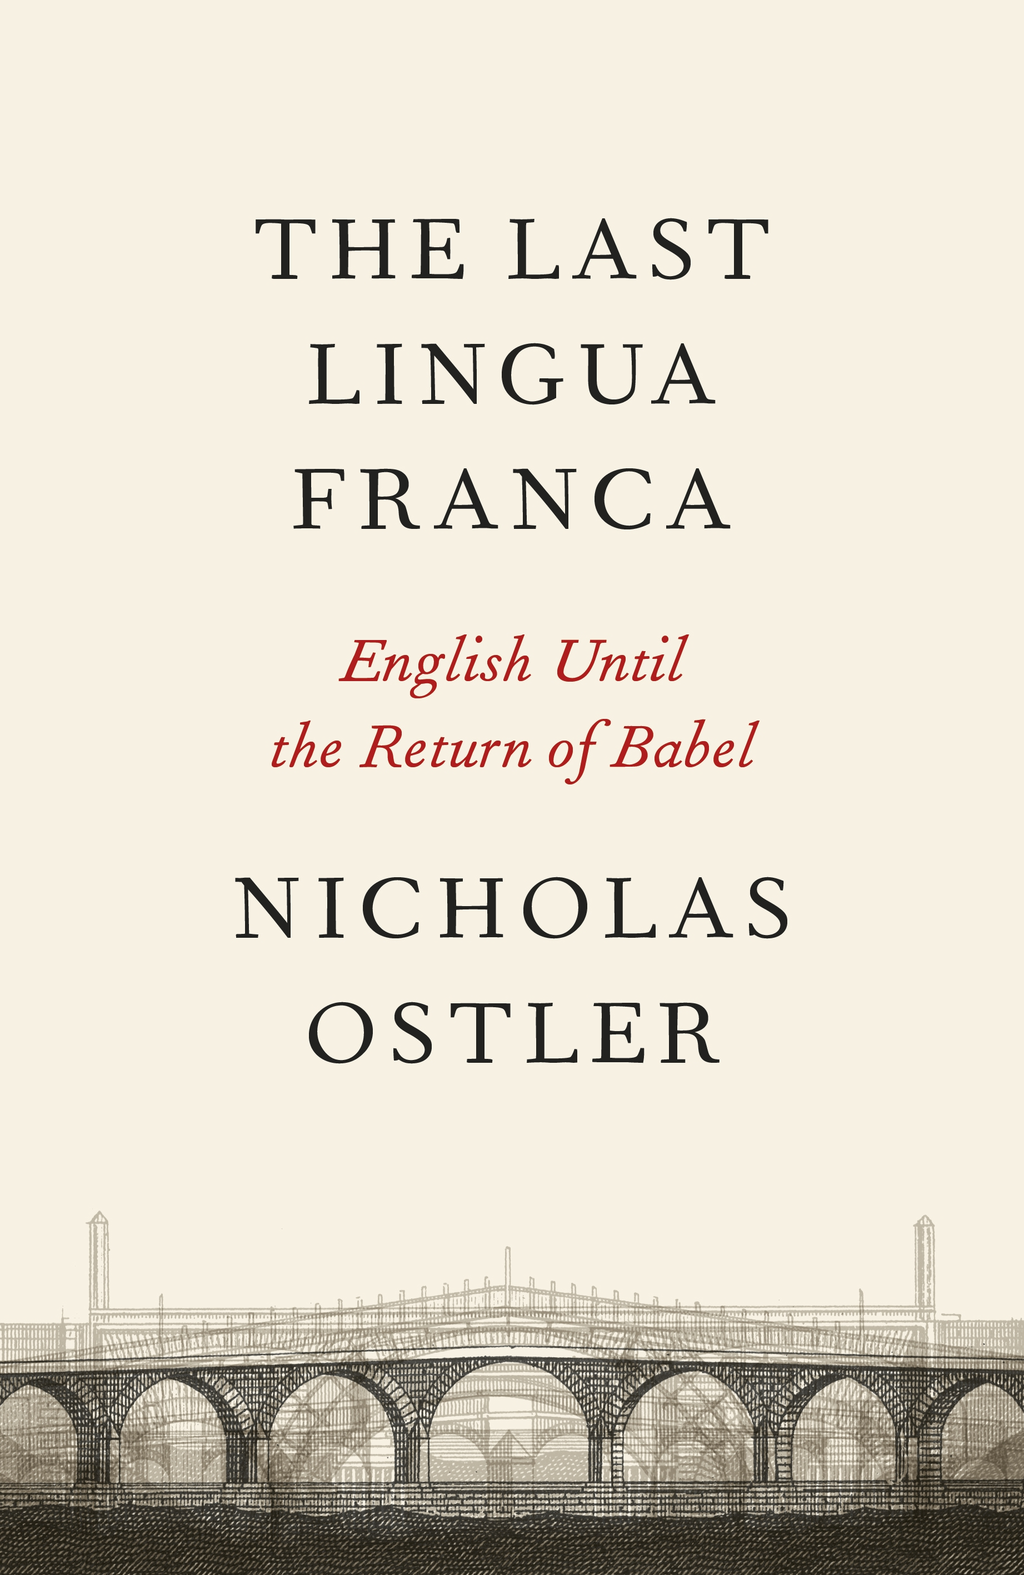 The Last Lingua Franca English Until the Return of Babel